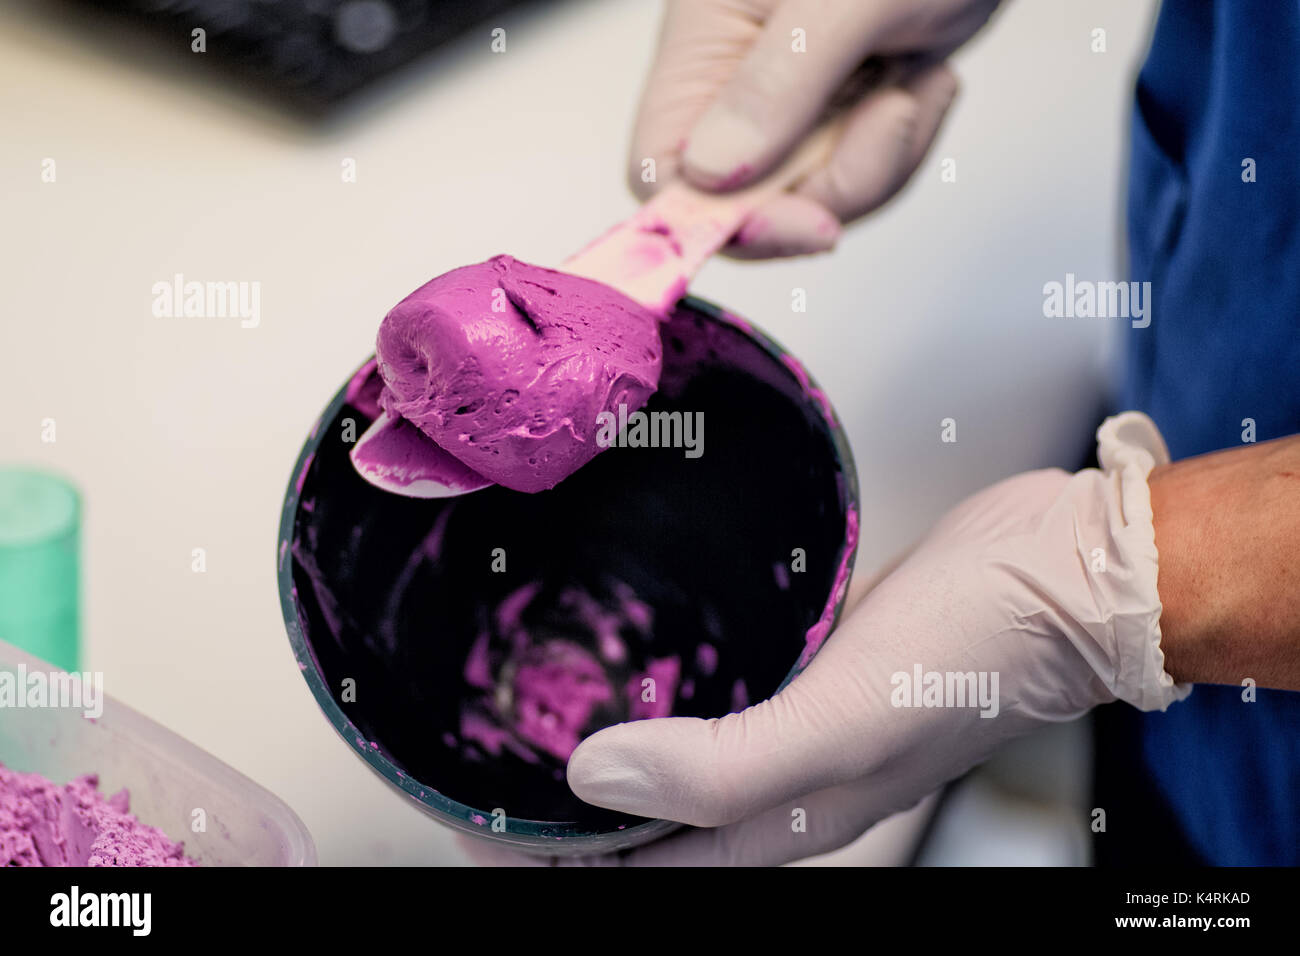 dental alginate impressions In order to make a dental impression, a thick liquid material, such as alginate or polyvinylsiloxane, is dispensed into an impression tray that is shaped like a u in order to properly fit into a mouth.